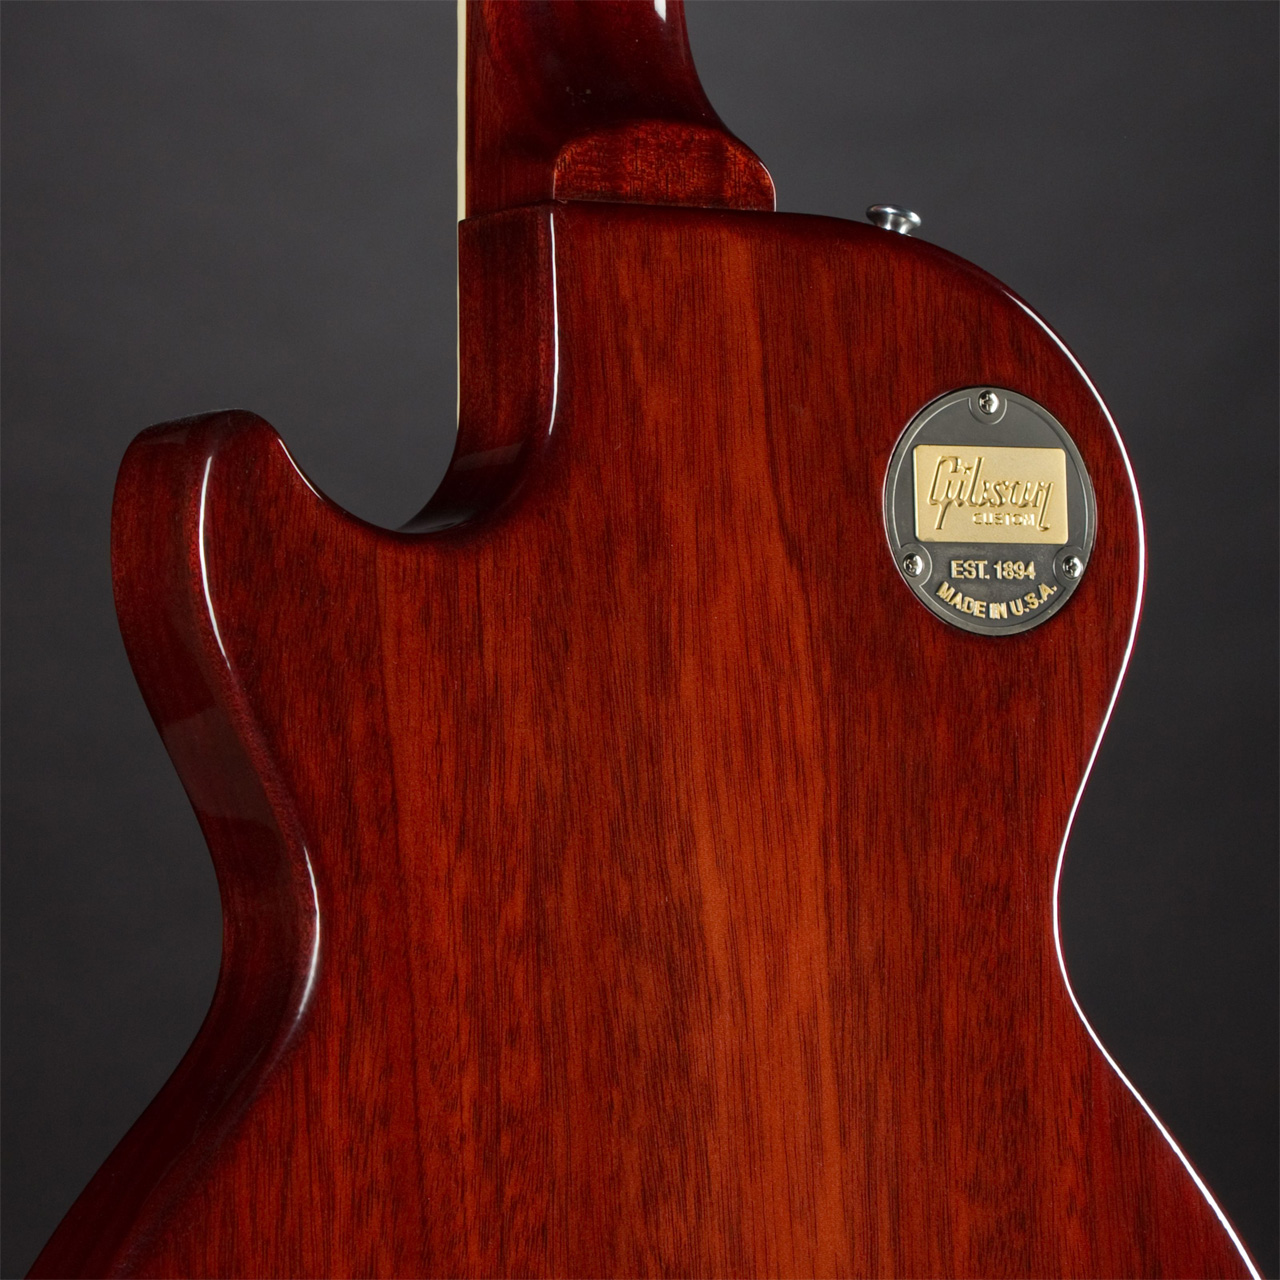 GIBSON Les Paul Special Maple Top Dark Cherry Limited Edition #CS 701579 Rückseite